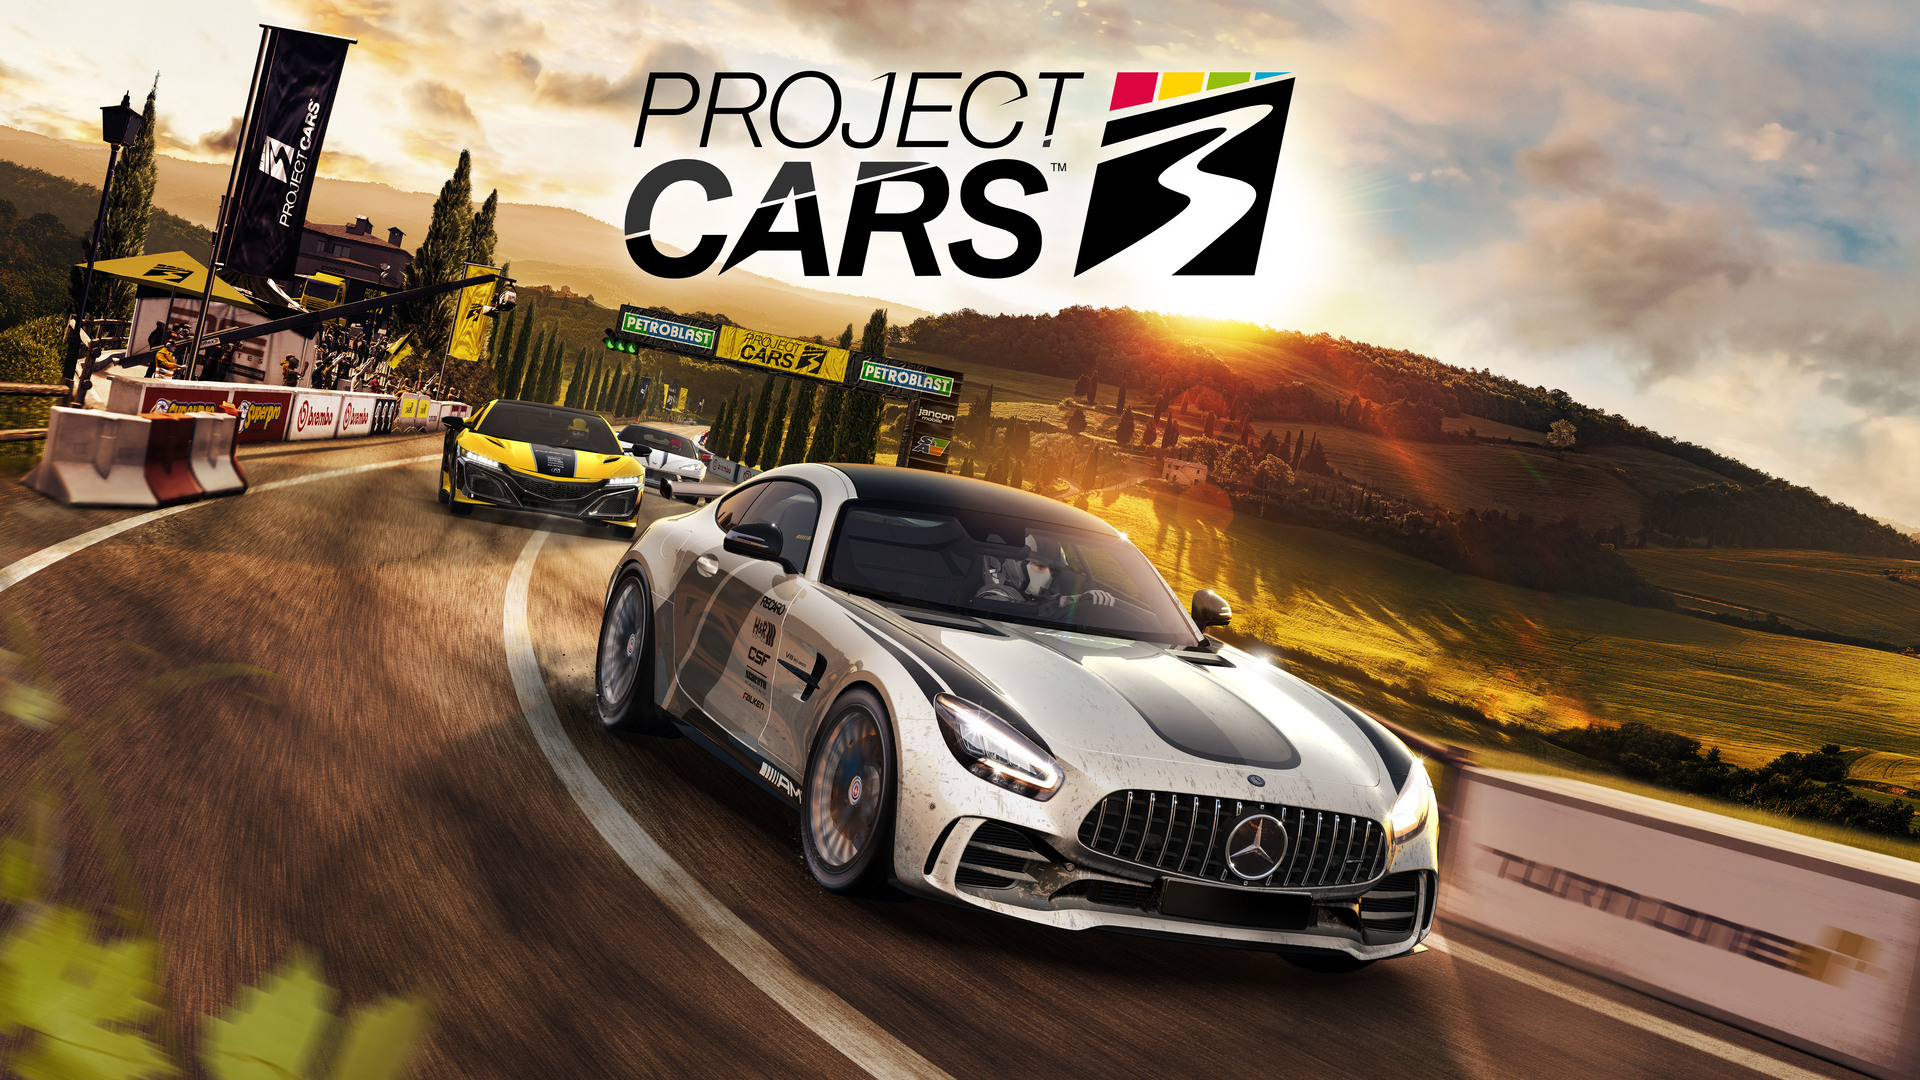 ProjectCars3-03